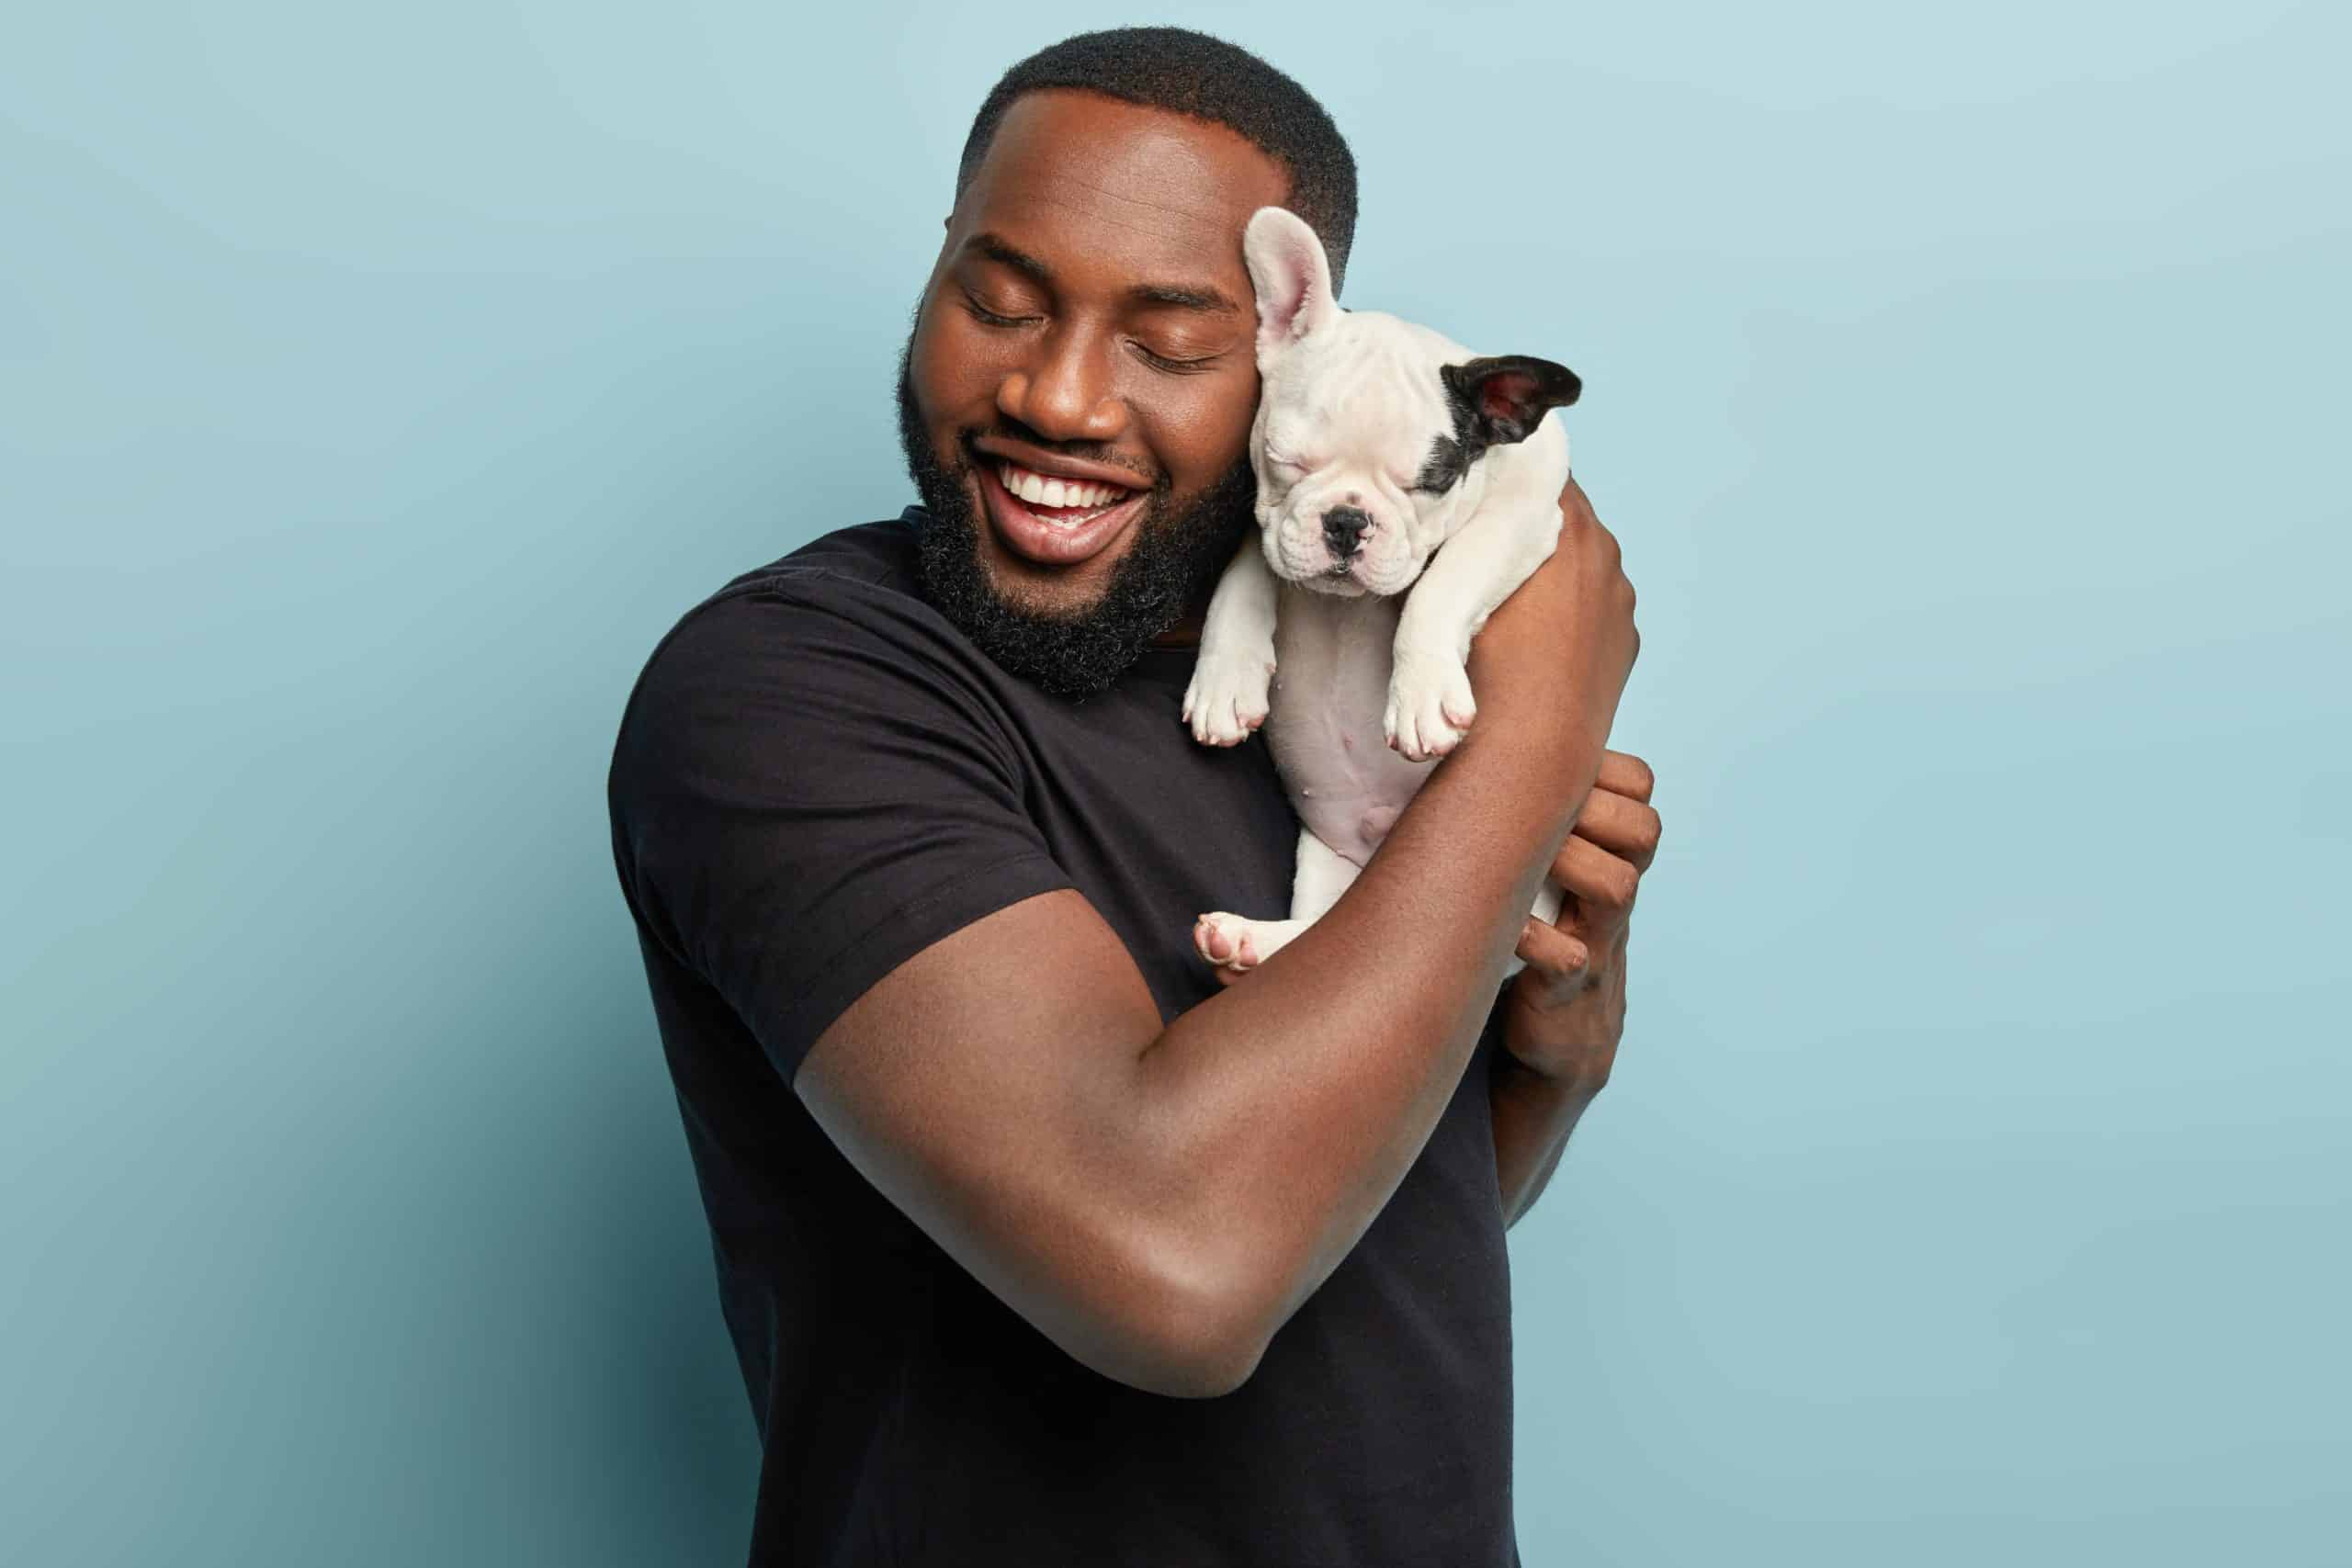 Man cuddles with a French bulldog puppy. Adopting a dog during quarantine has clear advantages, but consider your time, housing, and finances before making a decision.